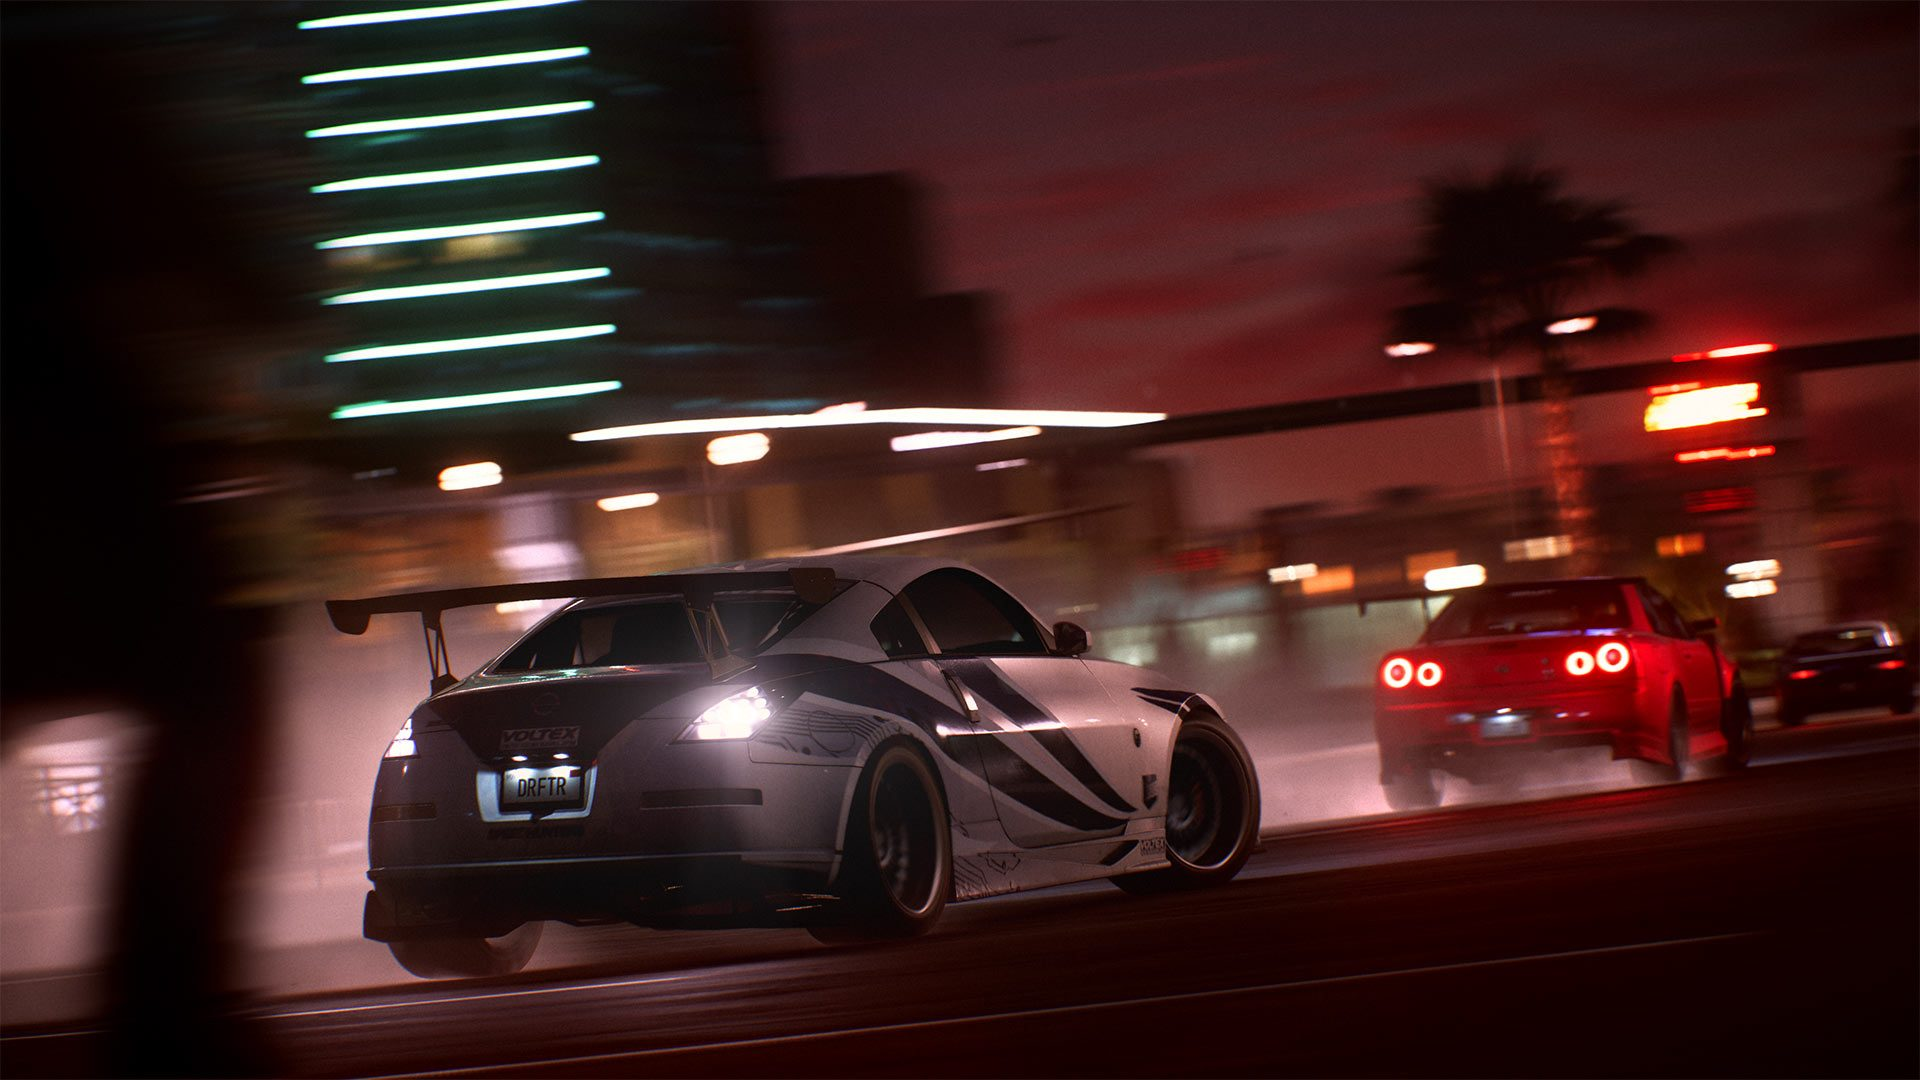 Null Injection failed error! (Game: Need for Speed-Payback) nfs-payback-action-driving-fantasy-jpg-adapt-crop16x9-jpg.jpg